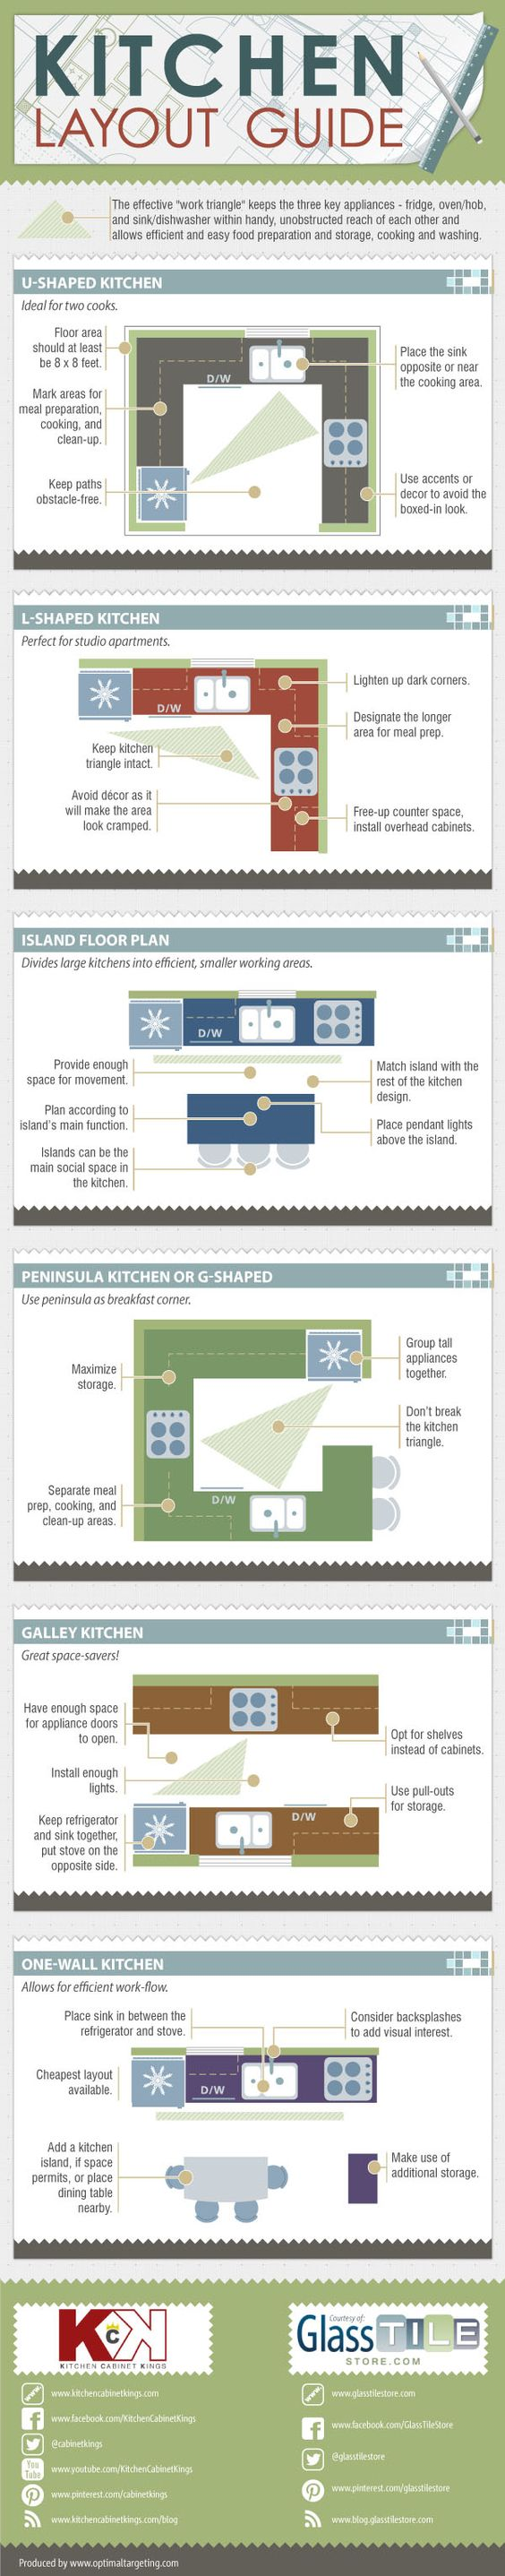 How to Choose a Kitchen Layout Based on the Fridge-Oven-Sink Work Triangle [Infographic] - http://freshome.com/2013/10/10/how-to-choose-a-kitchen-layout-based-on-the-fridge-oven-sink-work-triangle-infographic/